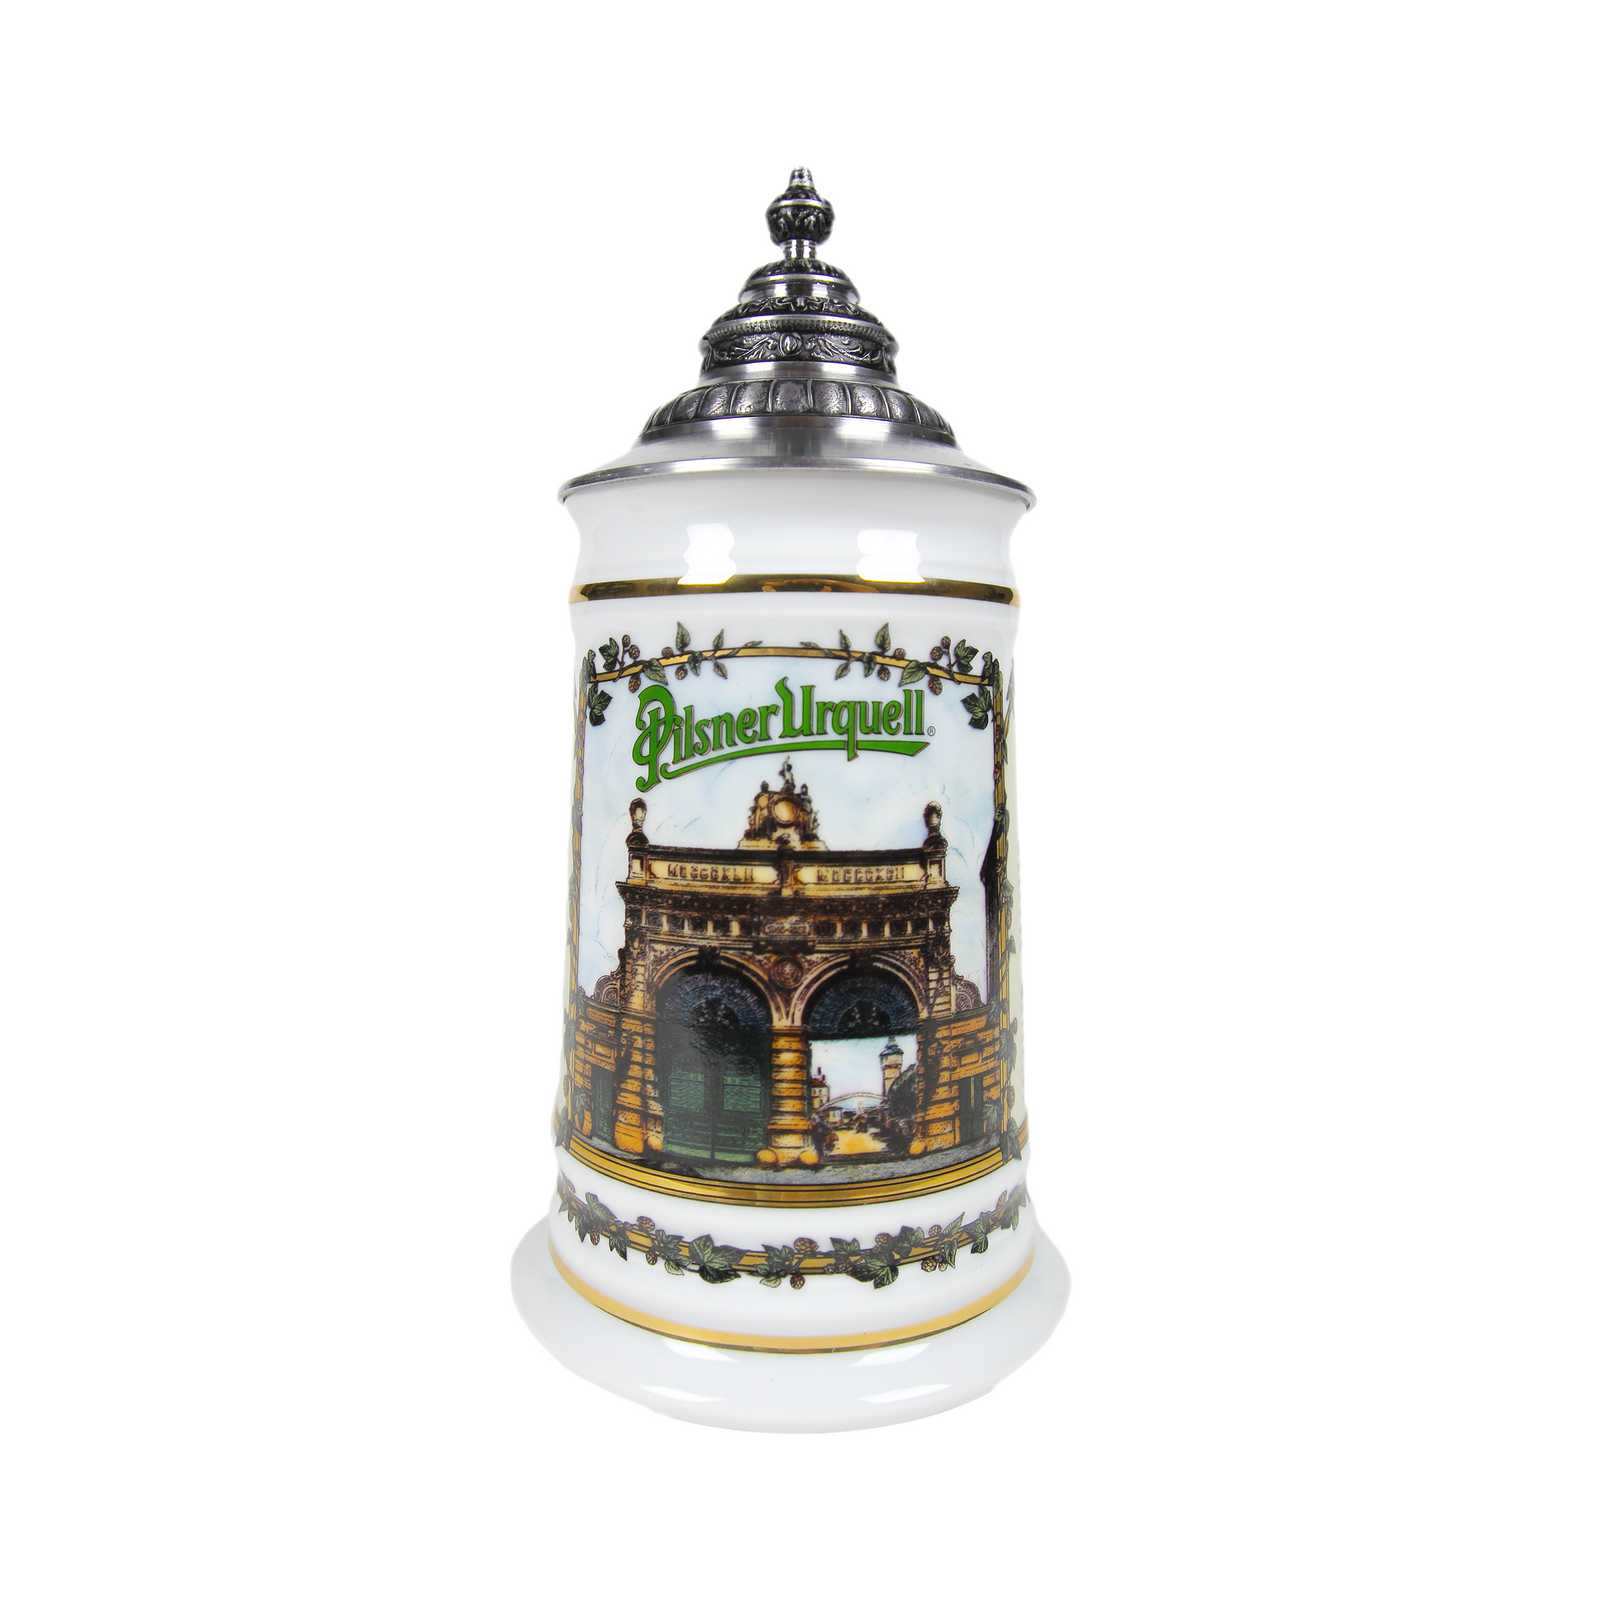 Pilsner Urquell Gate Stein with Pointed Lid